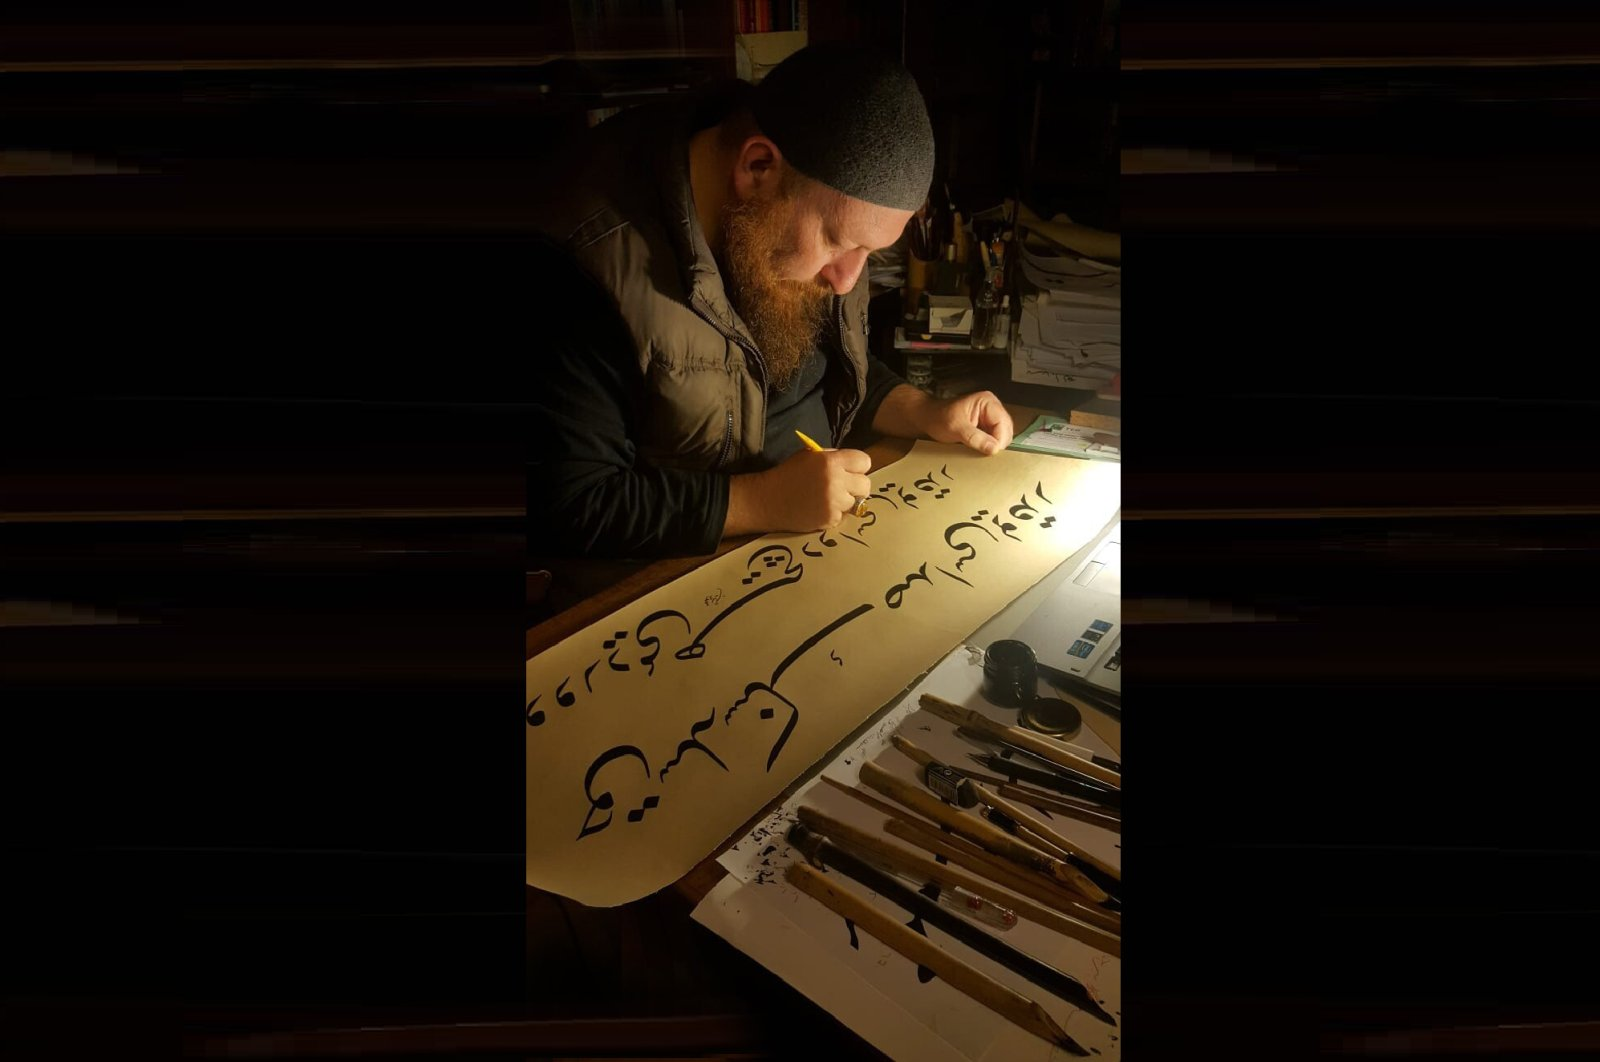 In this undated photo, Mahmut Şahin does calligraphy at his home. (İHA Photo)